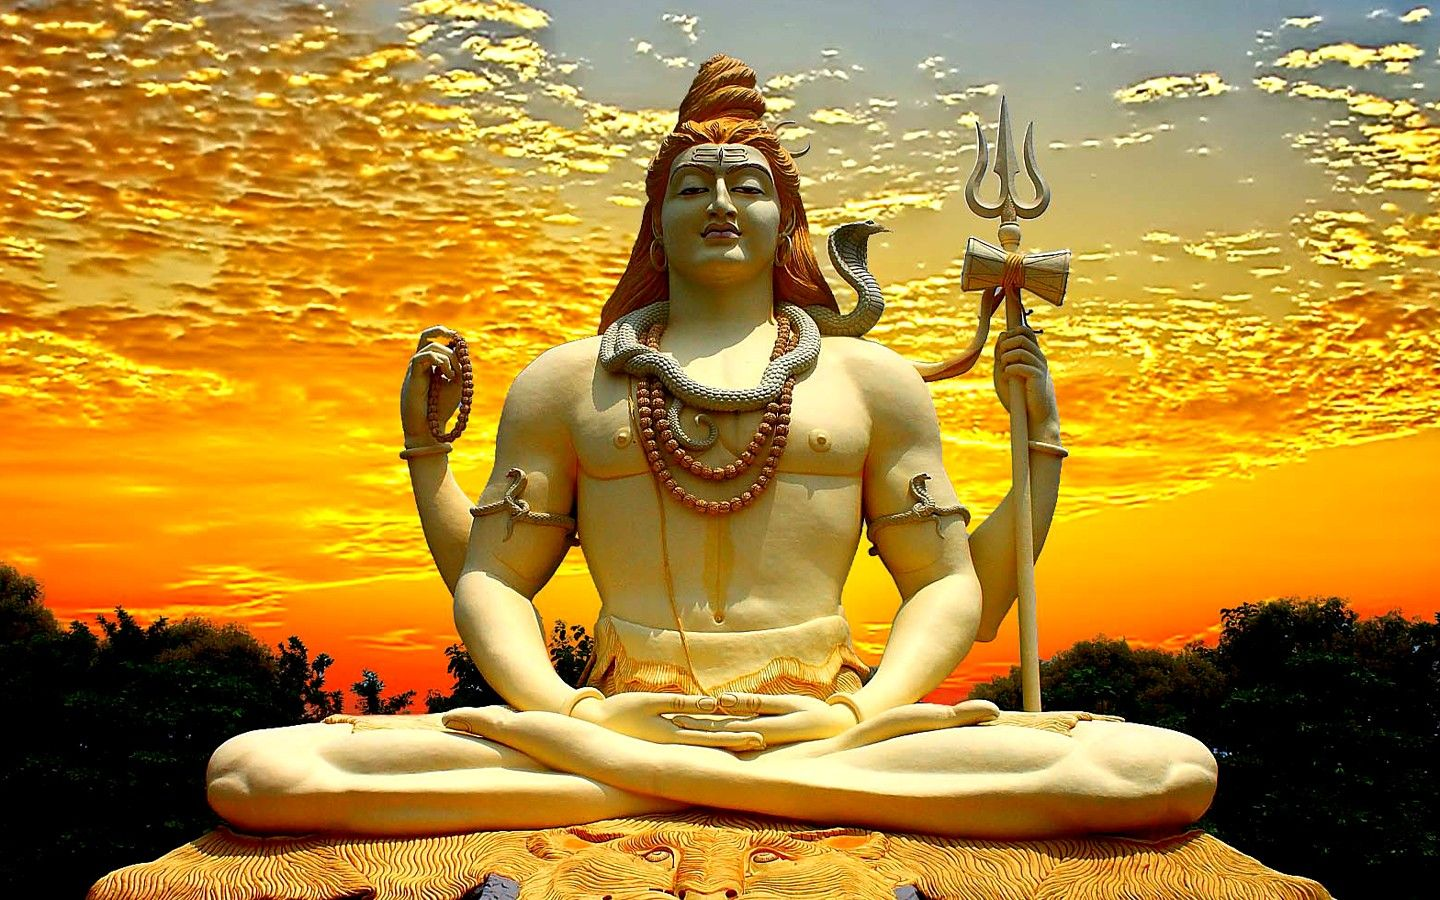 Lord Shiva New Hd Wallpapers Download Desktop Background: Lord Shiva Images, Lord Shiva Photos & HD Wallpapers Free